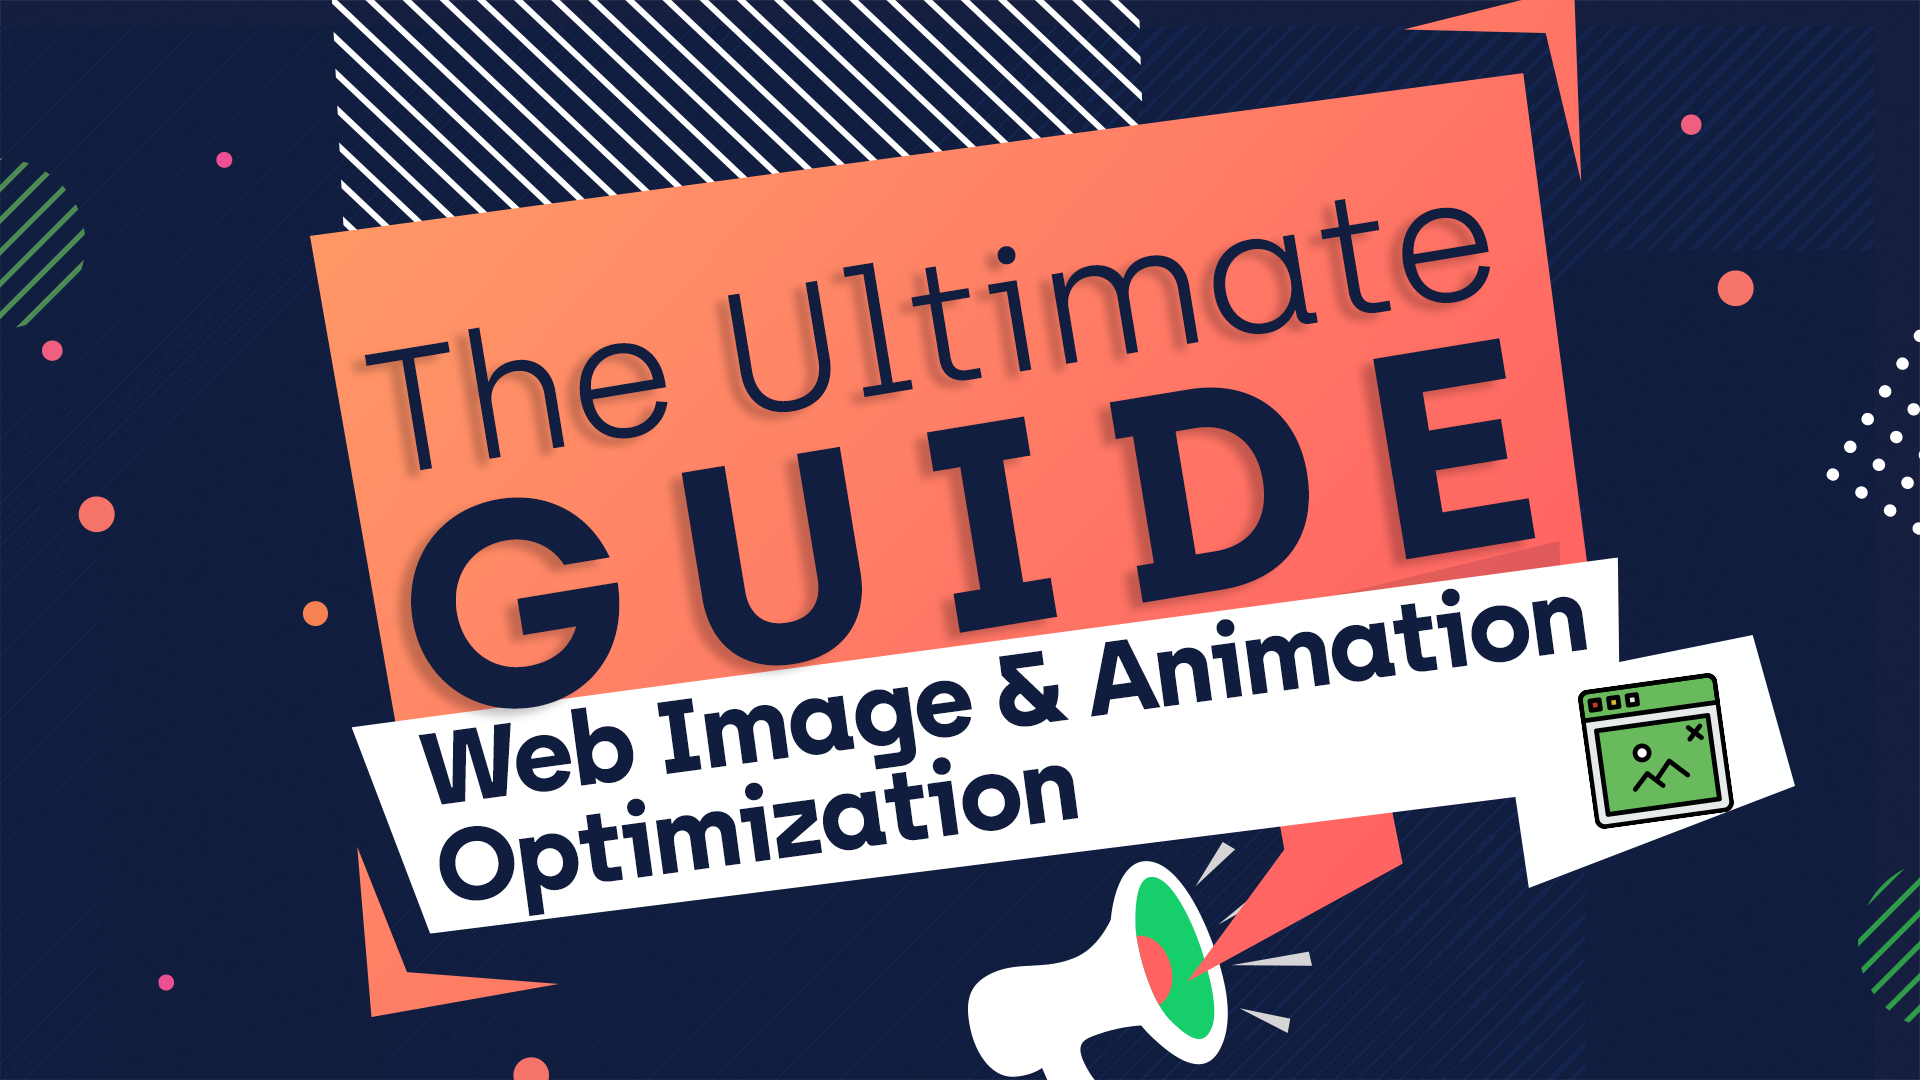 The Ultimate Guide to Web Image and Animation Optimization.